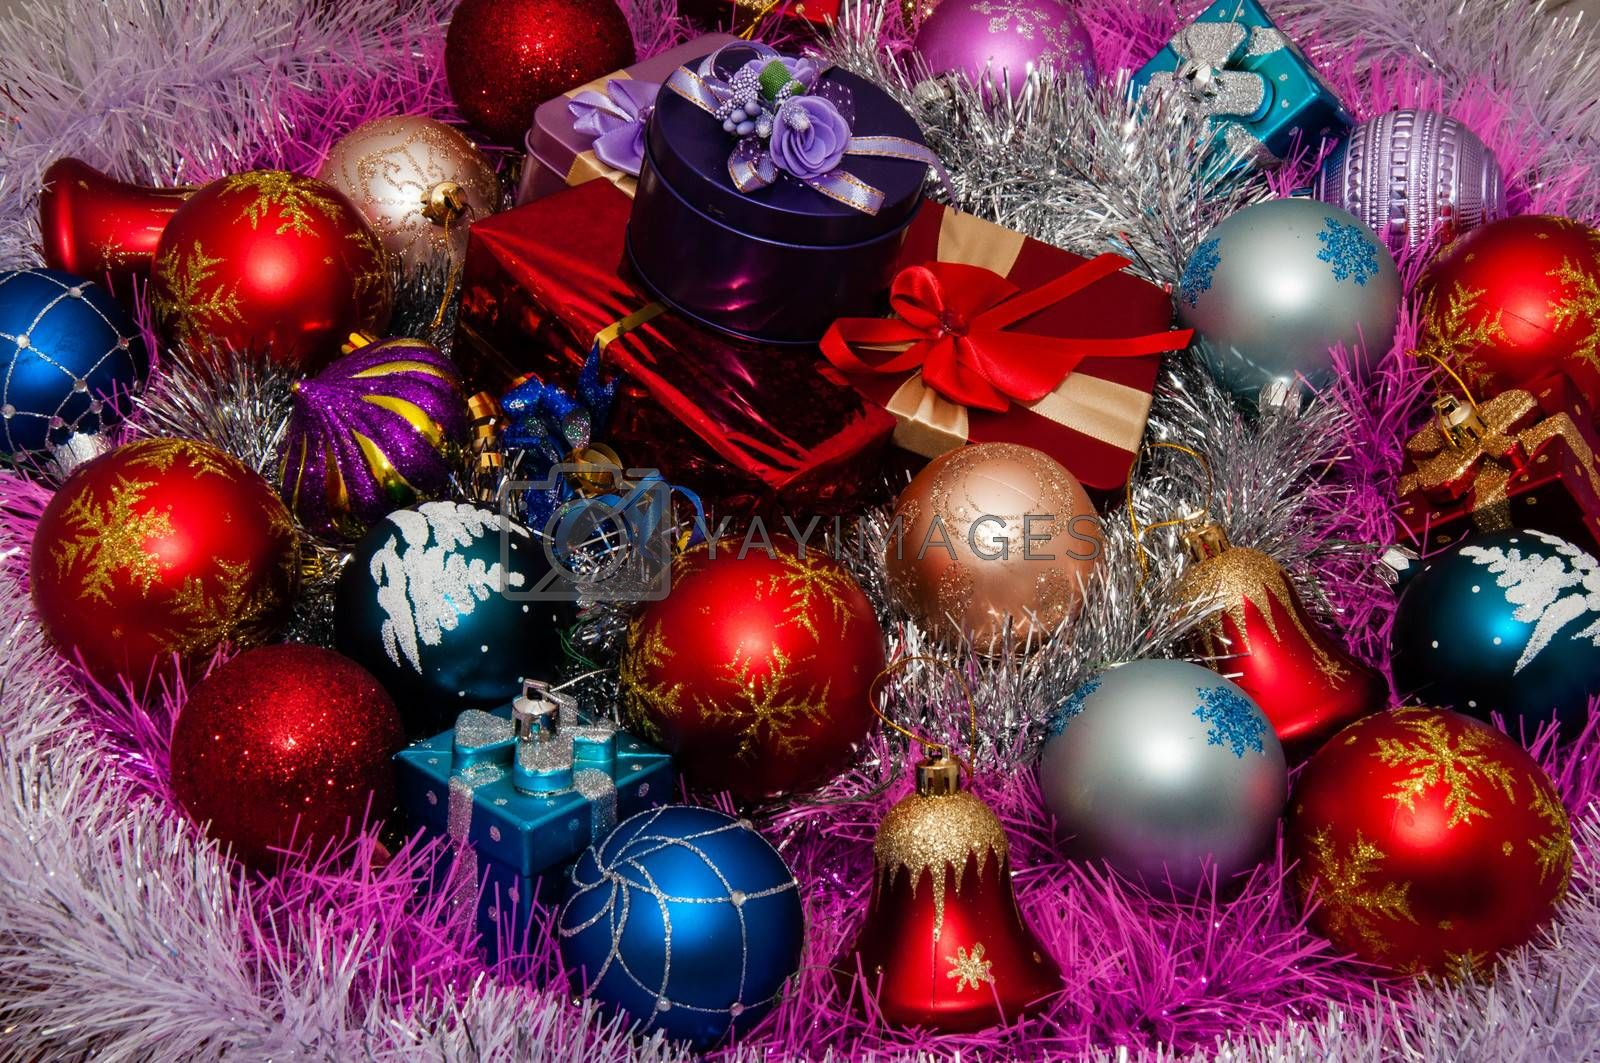 Colorful Christmas ornaments and boxes with Christmas gifts